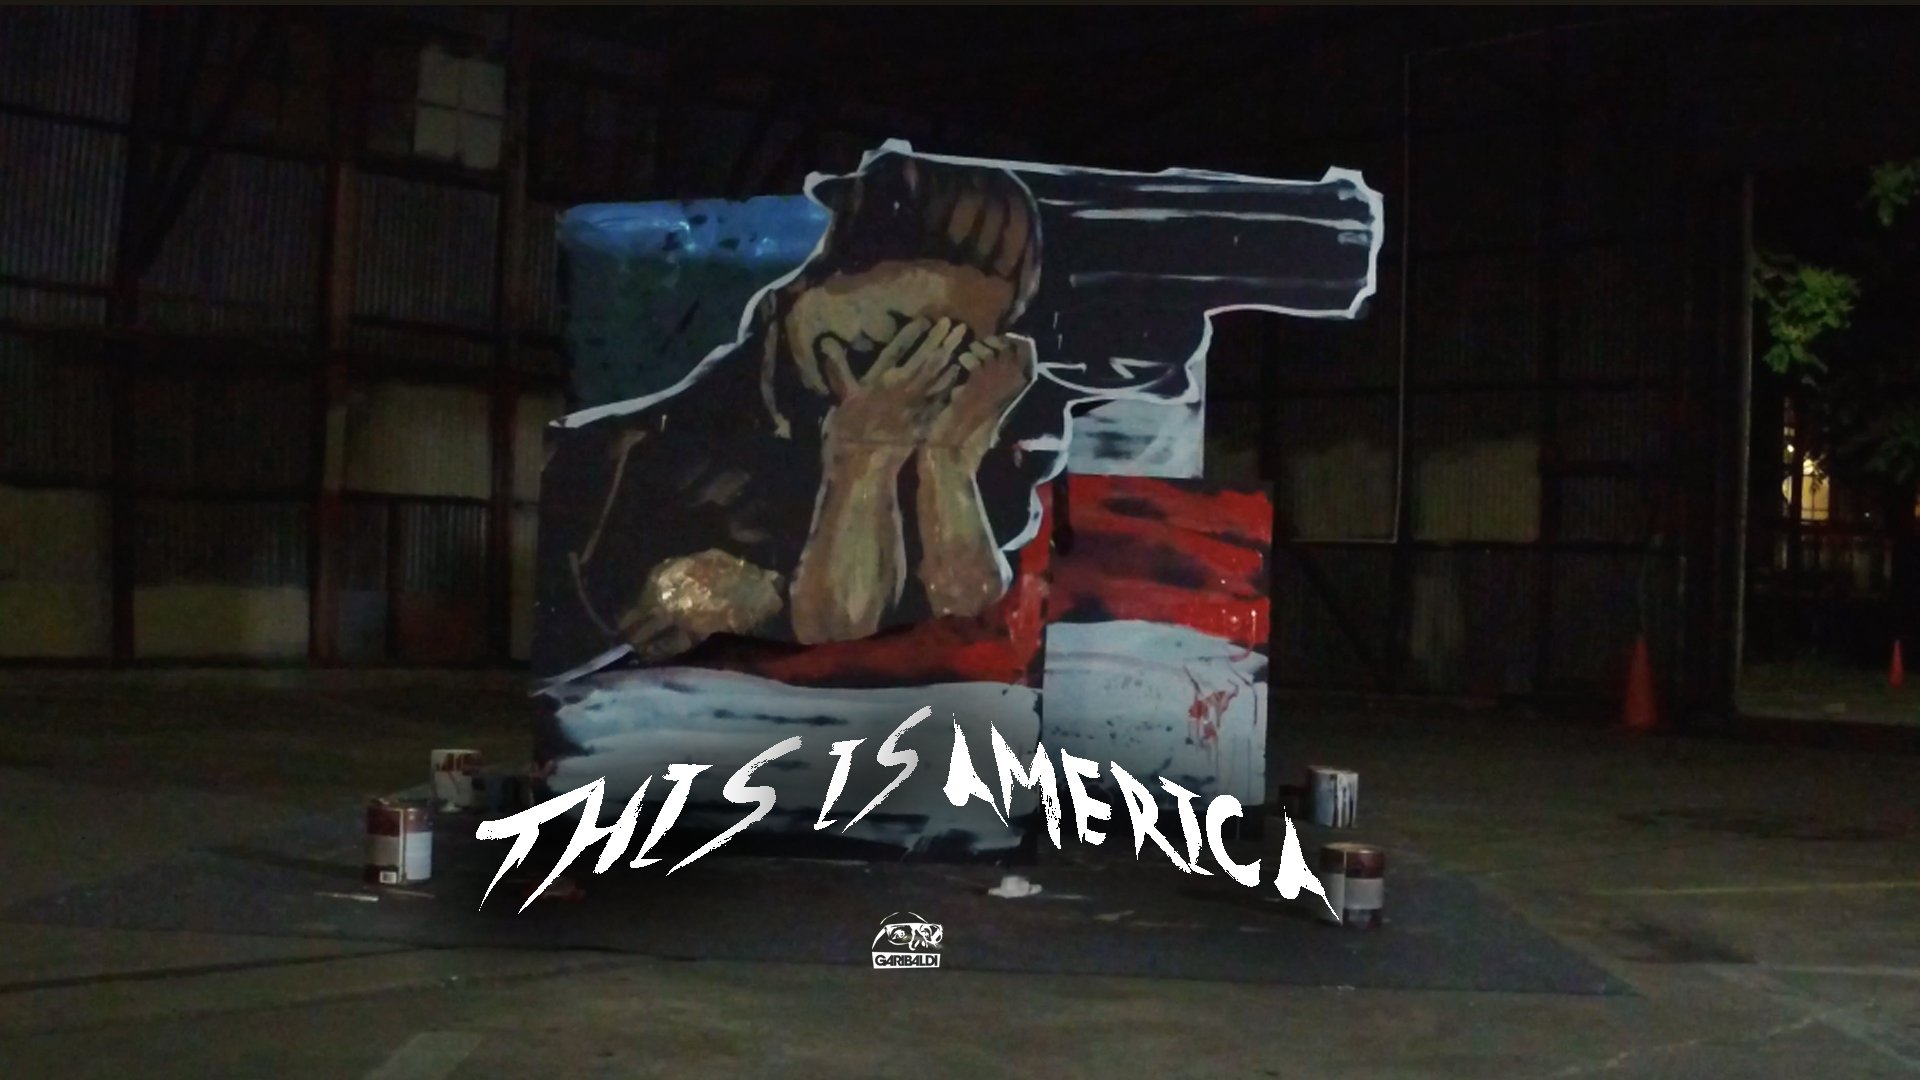 This Is America IG Cut Video